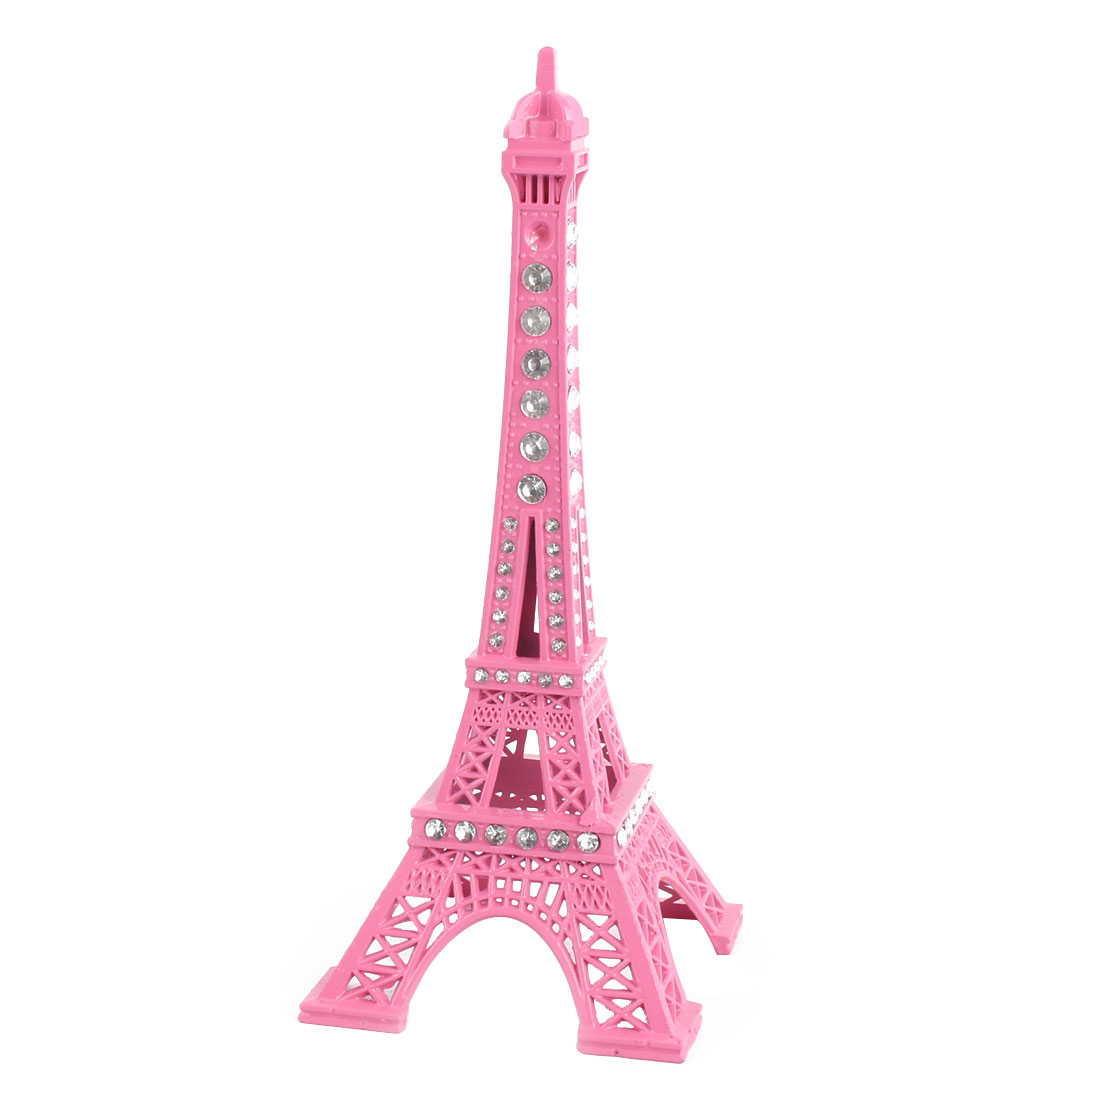 Household Desk Metal Miniature Statue Paris Eiffel Tower Model Souvenir Decor Pink